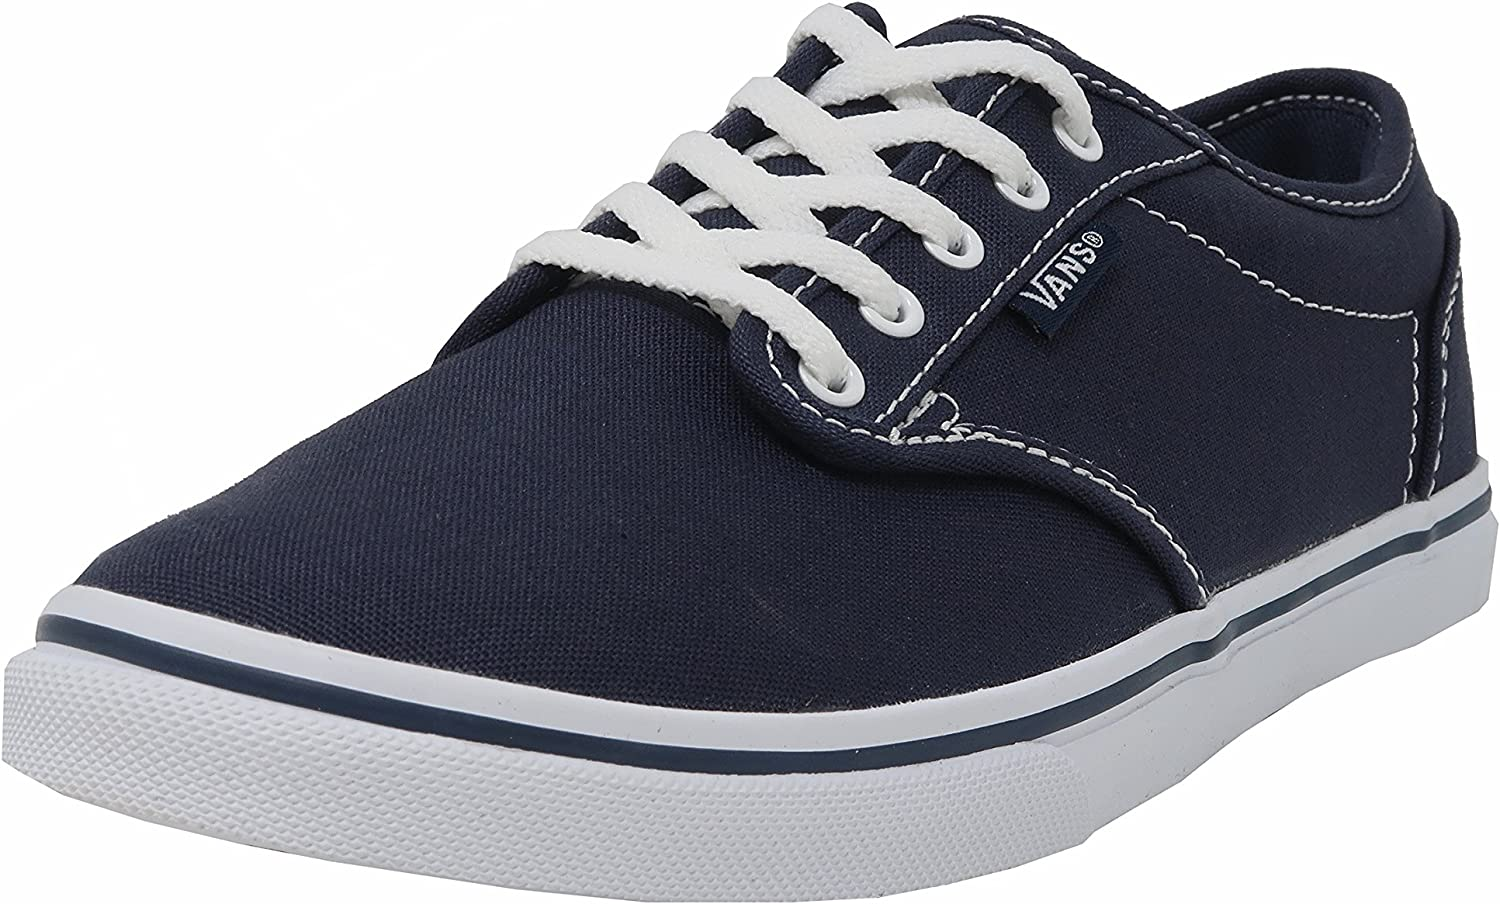 Vans Women's Atwood Low Fashion Sneakers Shoes